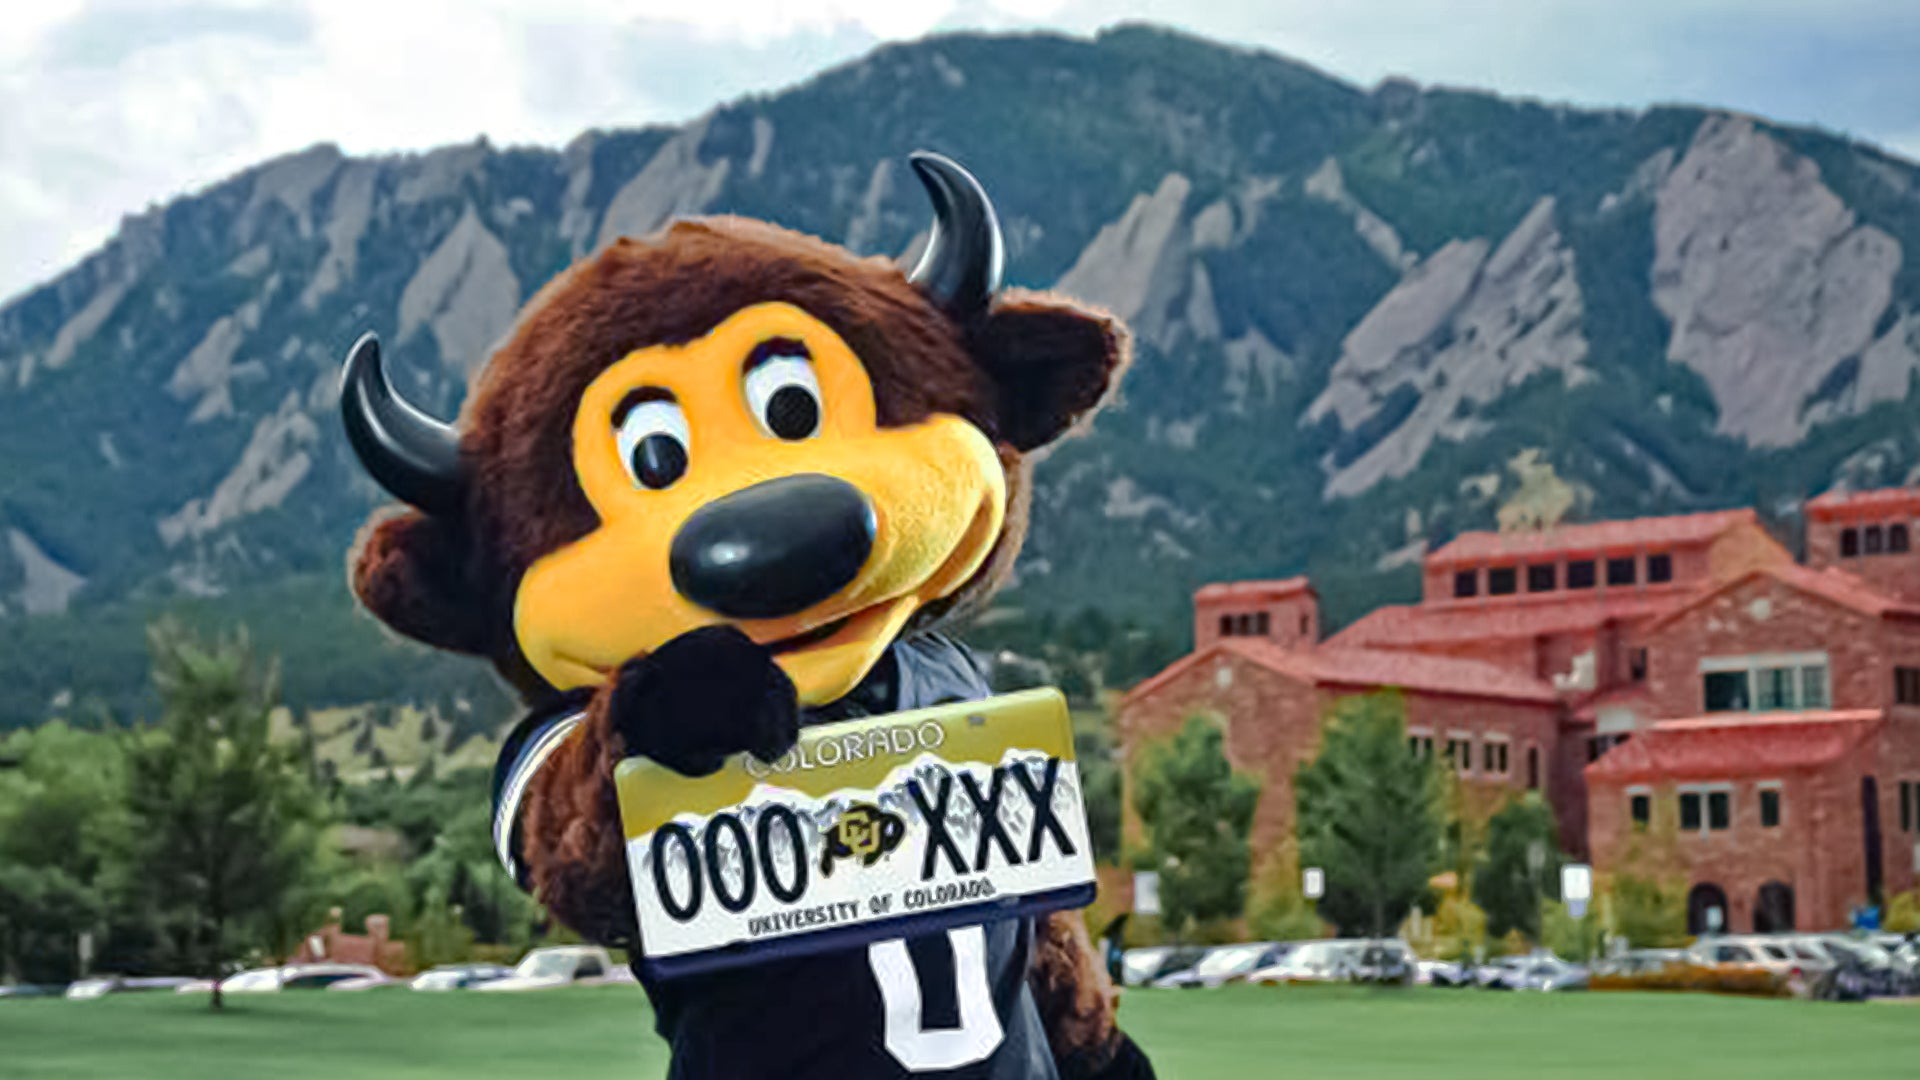 CU Boulder mascot Chip holding up a University of Colorado license plate